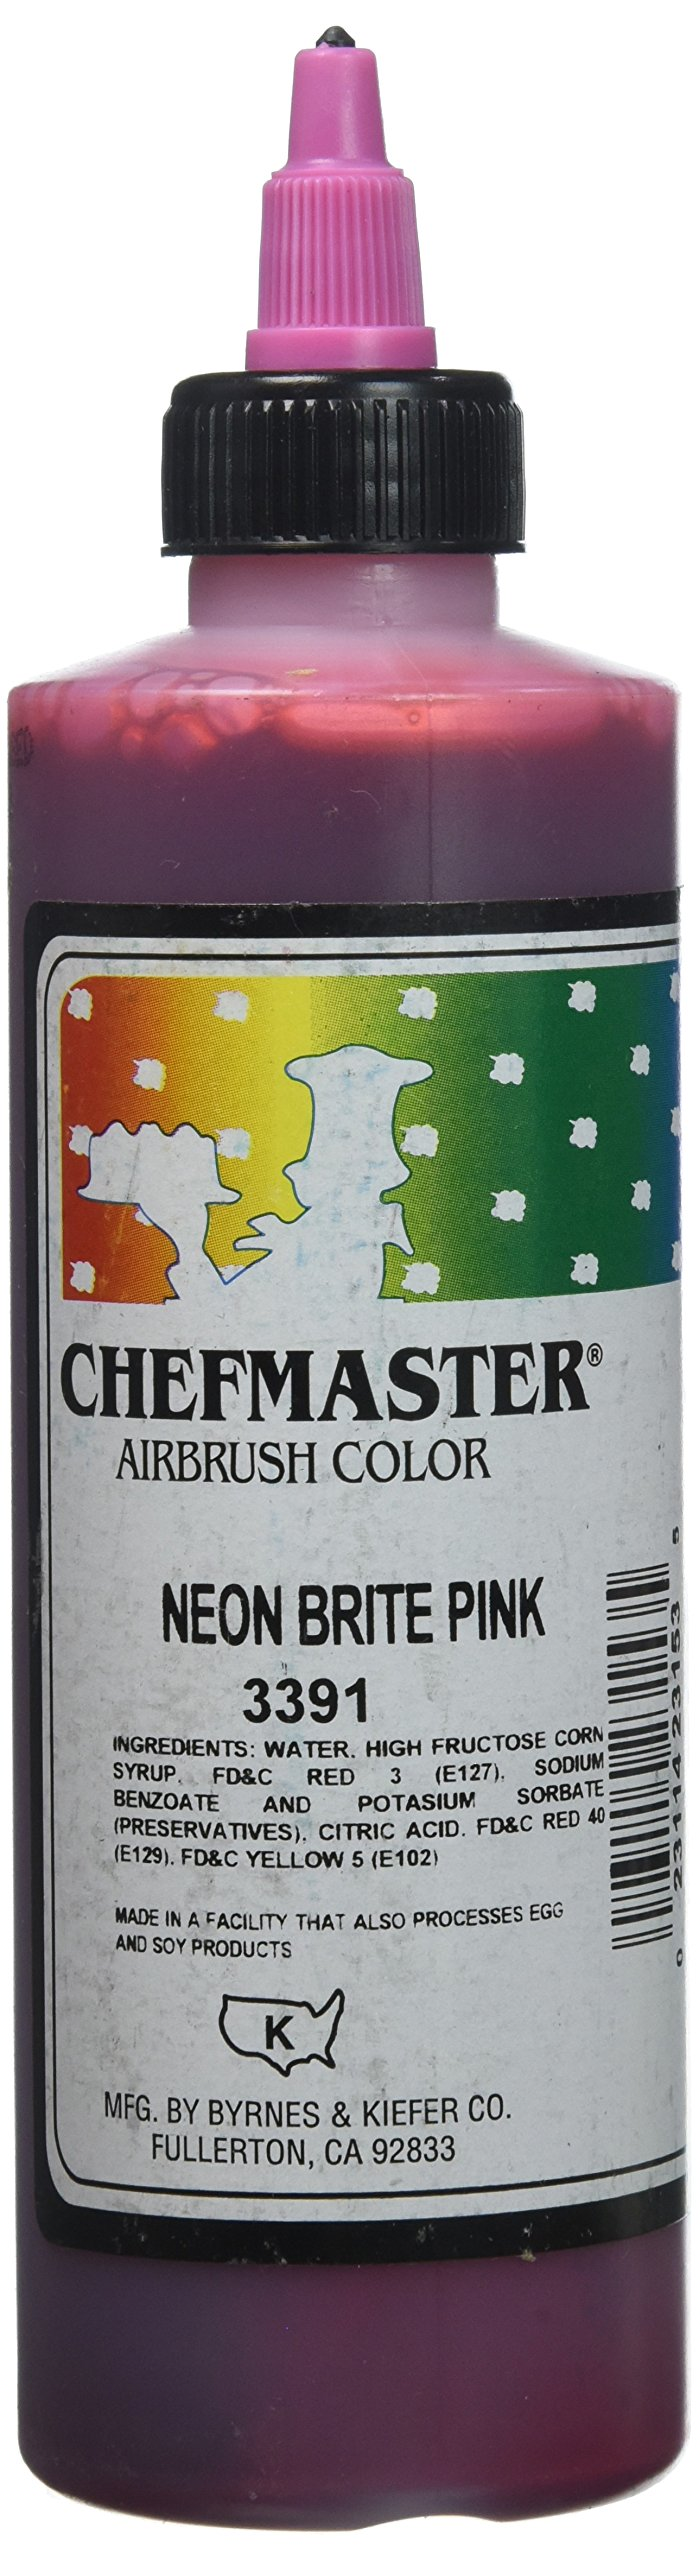 Chefmaster Airbrush Spray Food Color, 9-Ounce, Neon Brite Pink